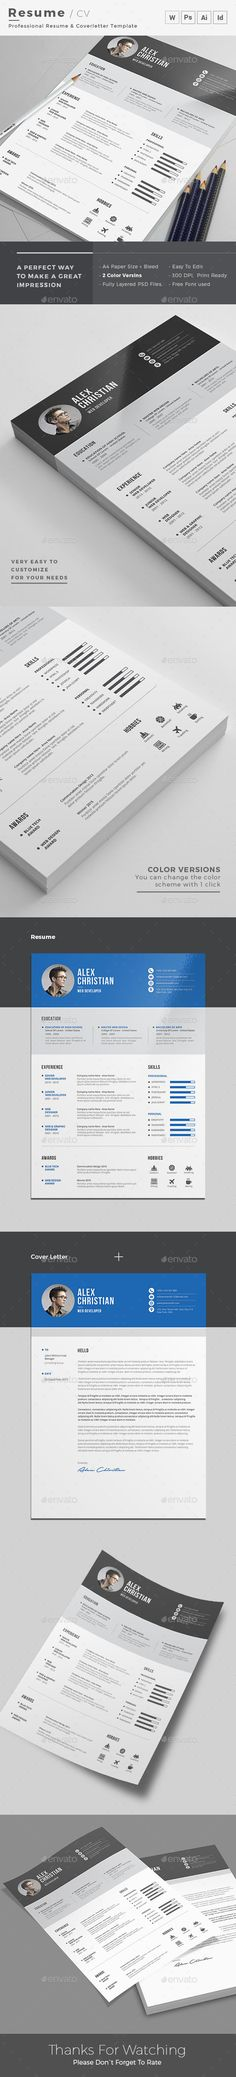 Clean Resume Word Template. Available in all format – Photoshop, Illustrator, Indesign & MS Word. Elegant page designs are easy to use and customize, so you can quickly tailor-make your resume for any opportunity and help you to get your job.